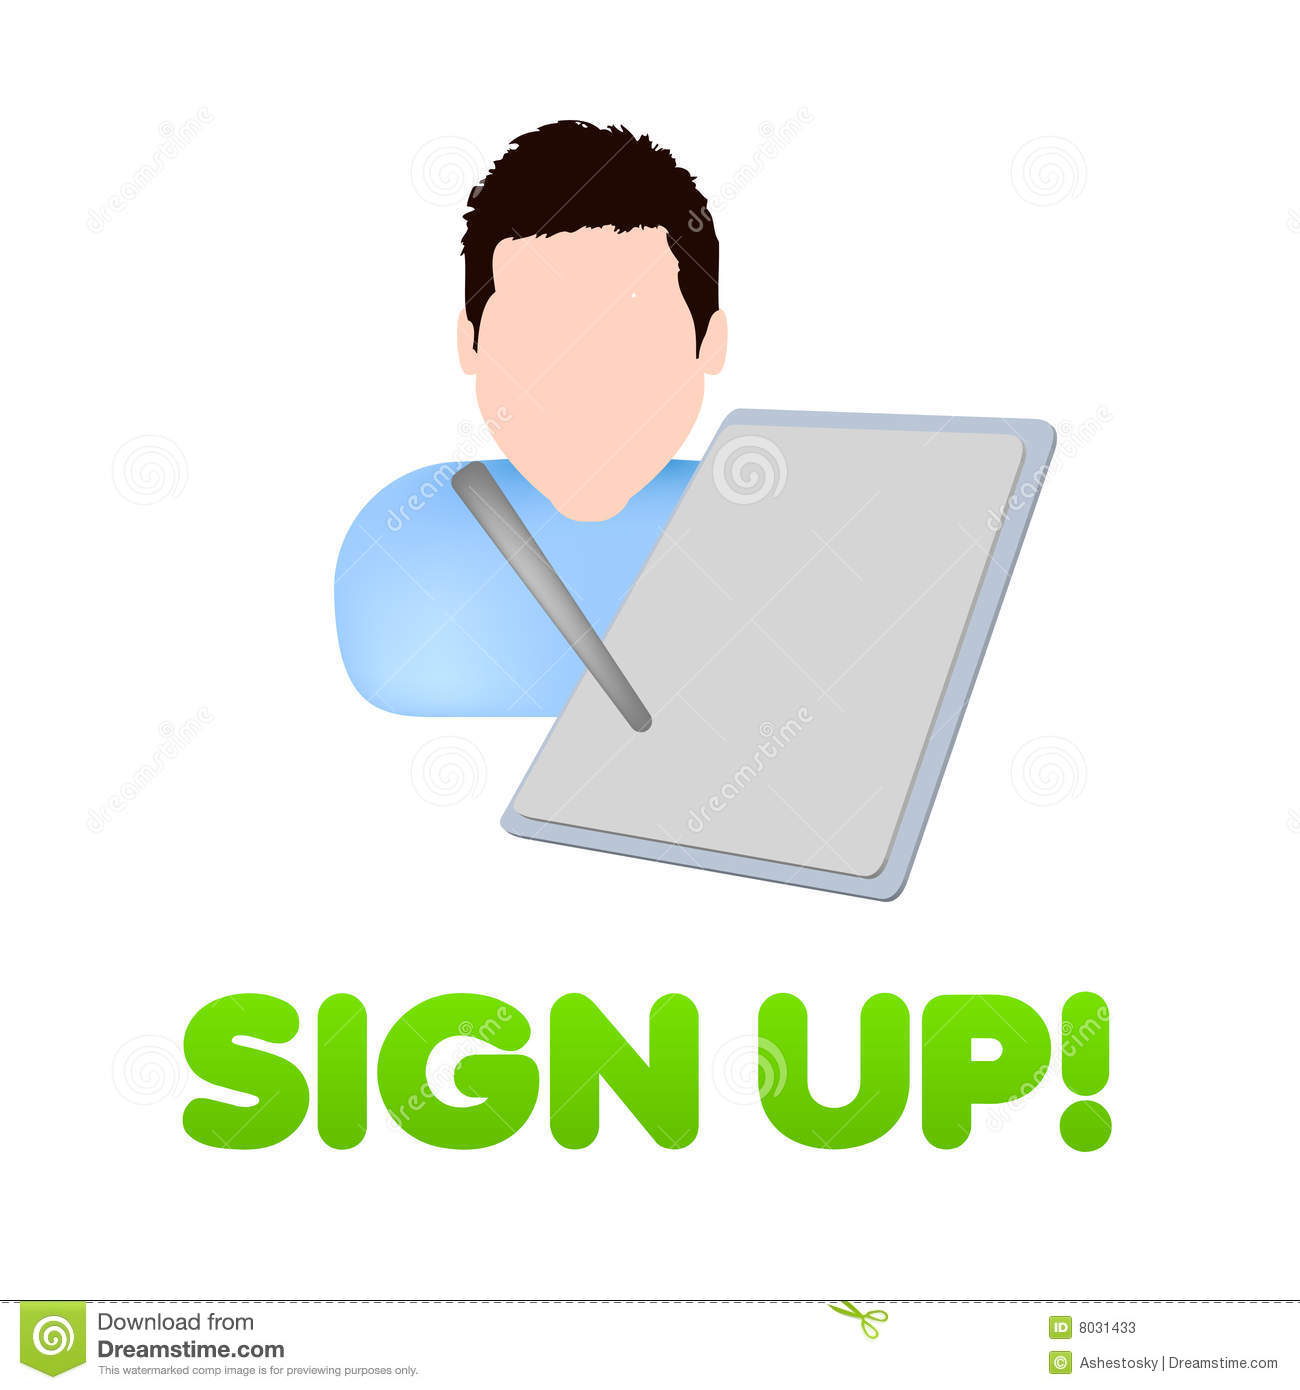 sign up register icon design stock photos image 8031433 Toy Cash Register animated cash register clipart